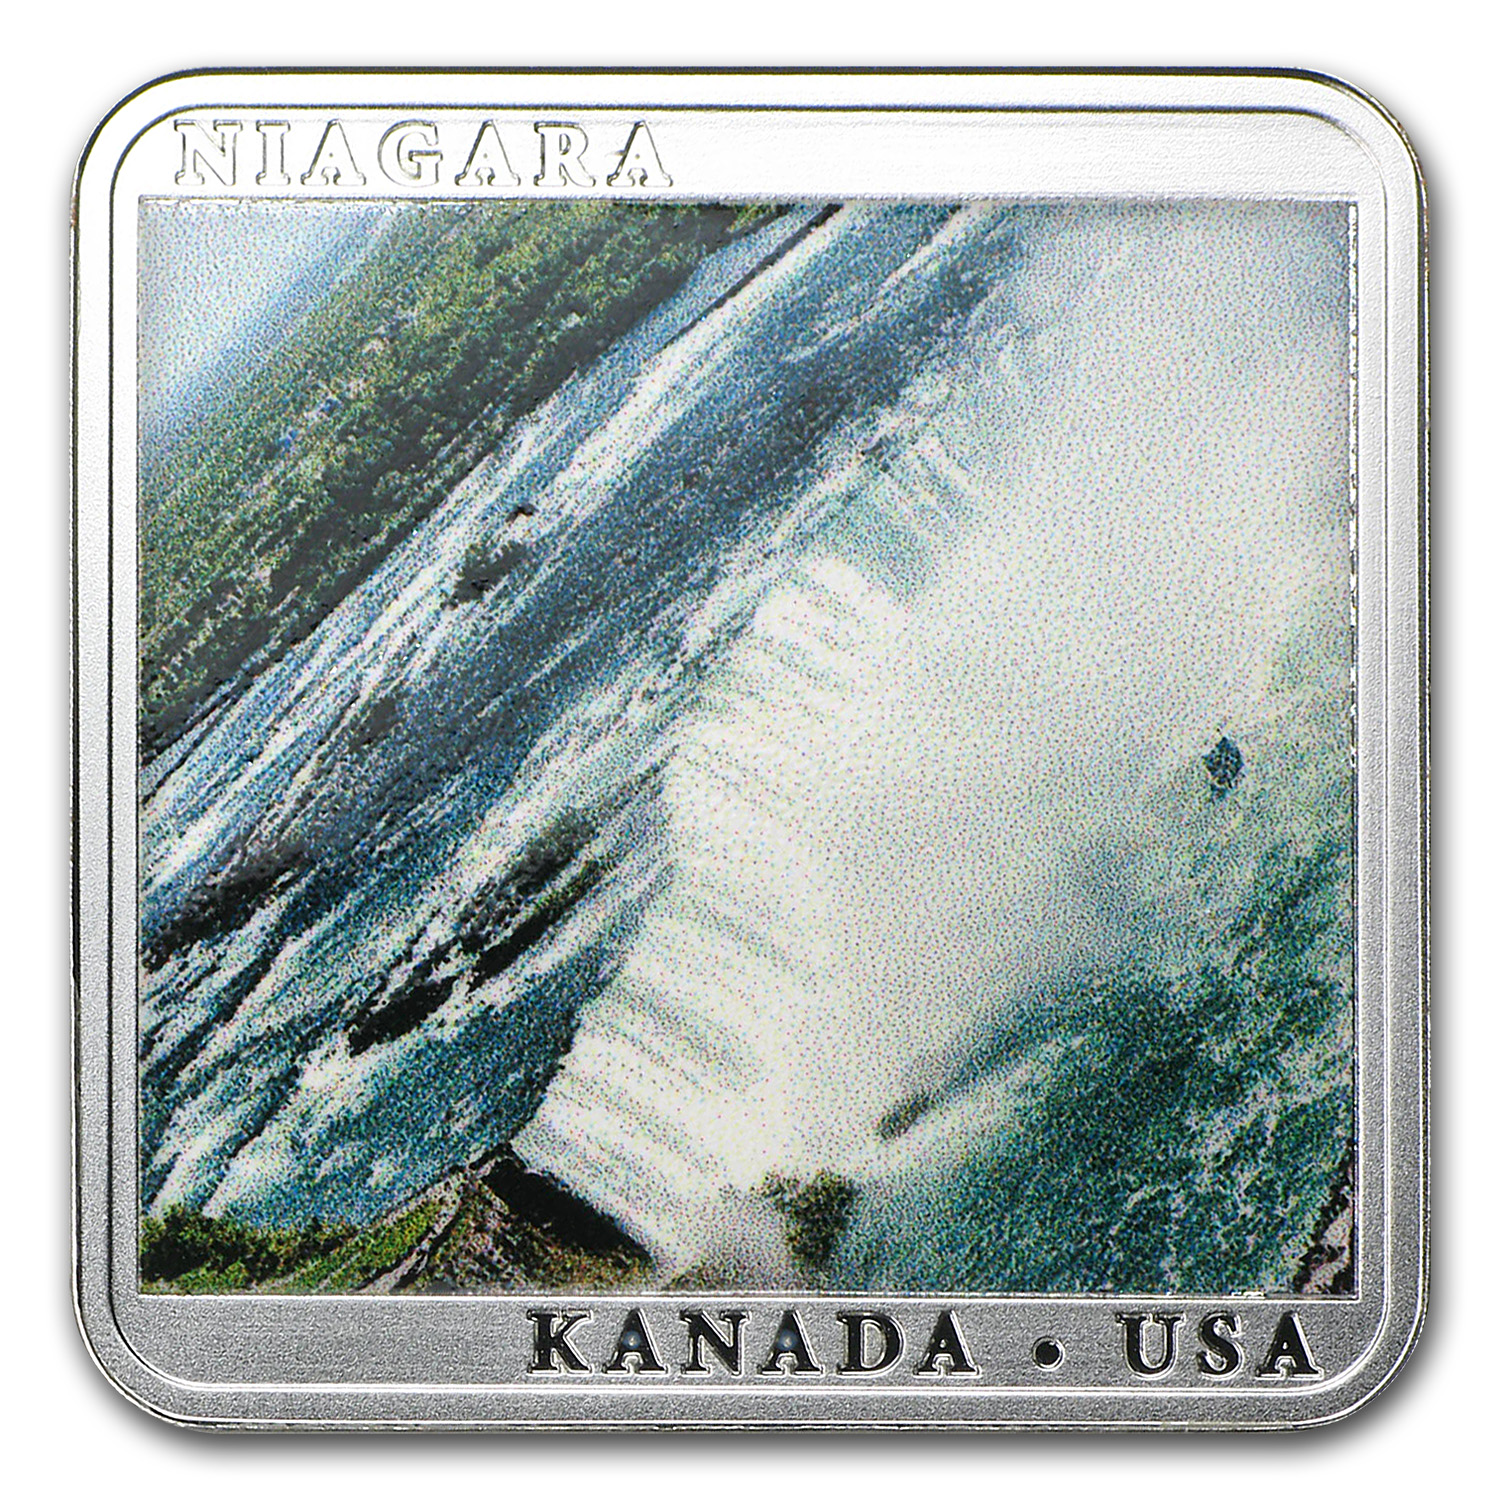 2014 Niue Silver Niagara Waterfall Square Coin Proof